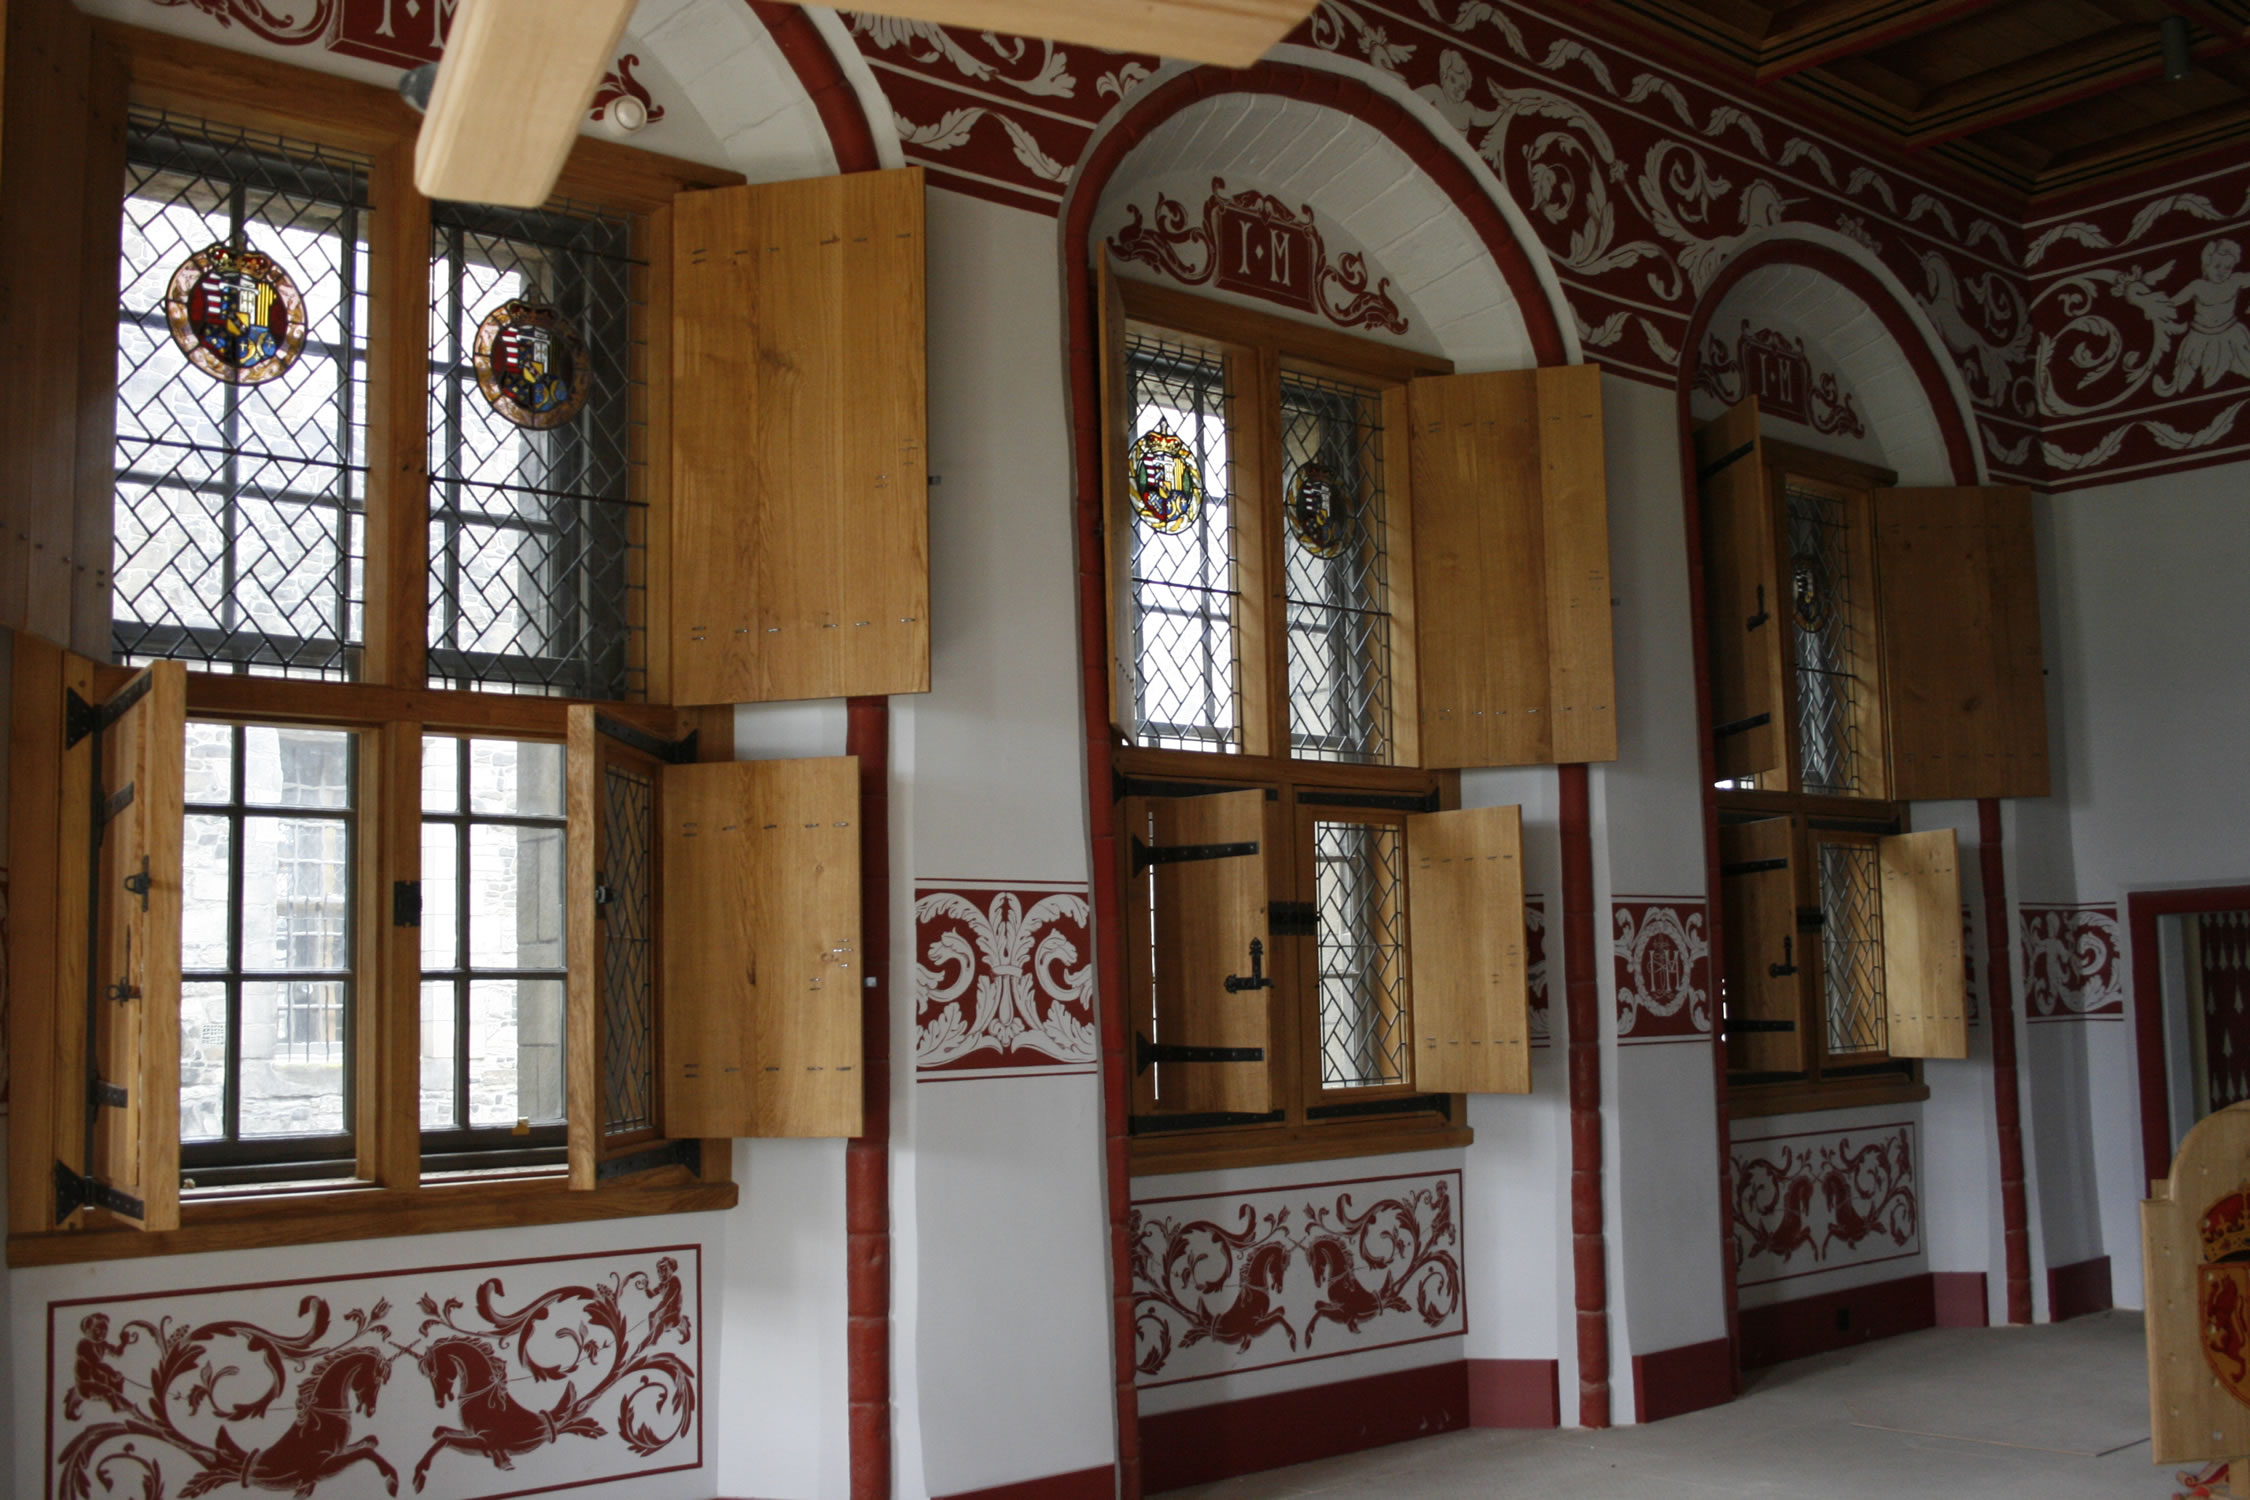 Oak Joinery for the Renaissance Palace at Stirling Castle, Scotland